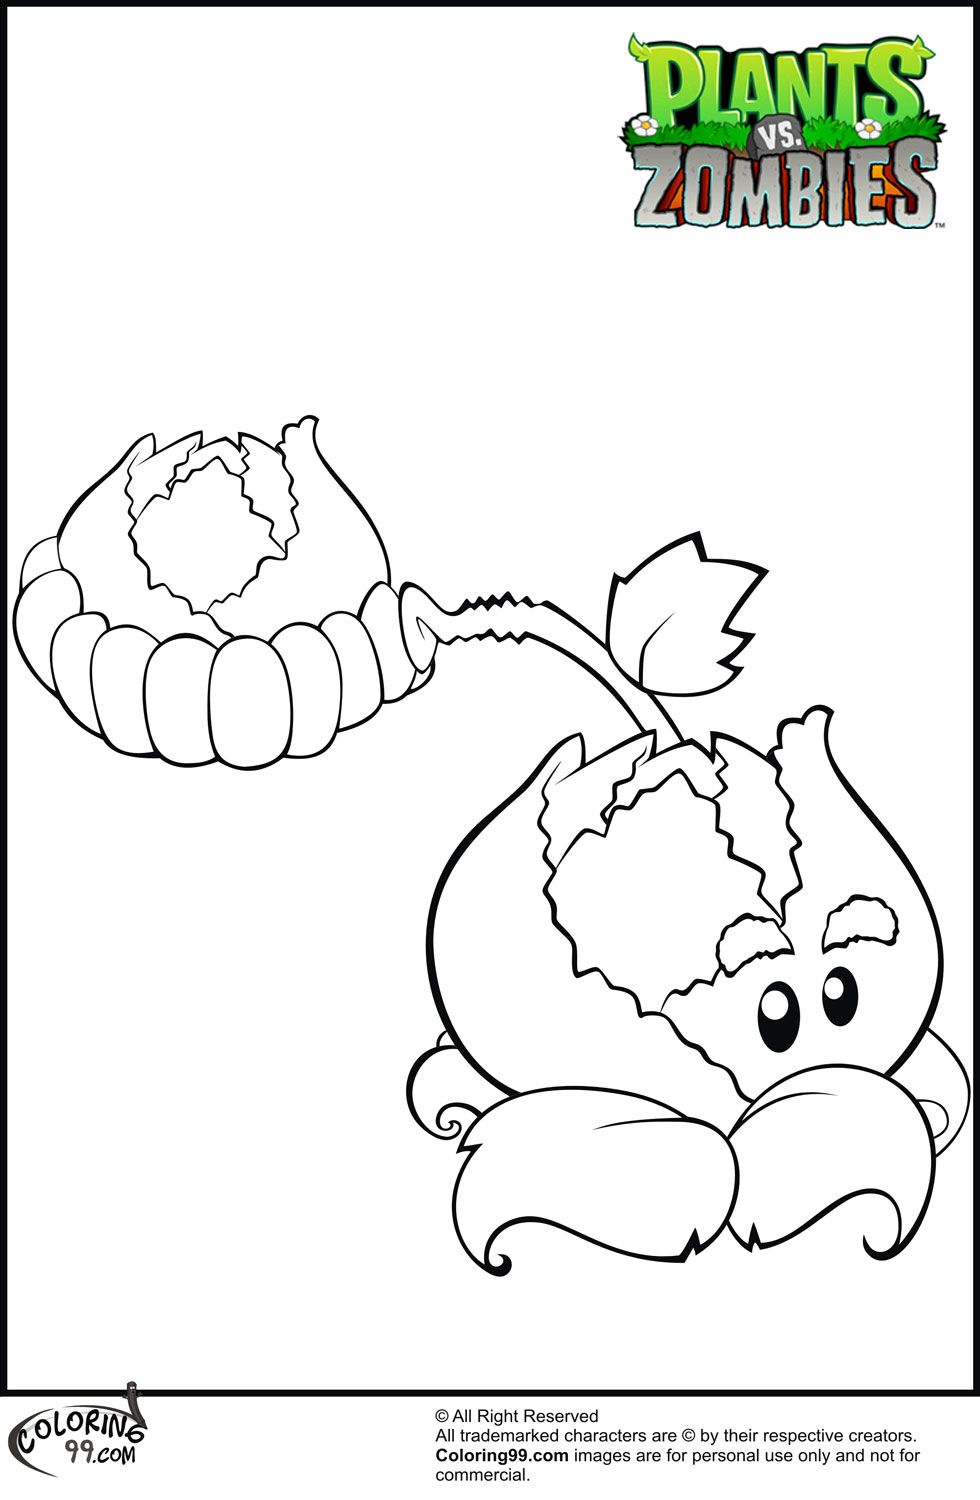 Plants vs Zombies Coloring Pages - Page 2 of 2 - Coloring4Free.com | 1500x980